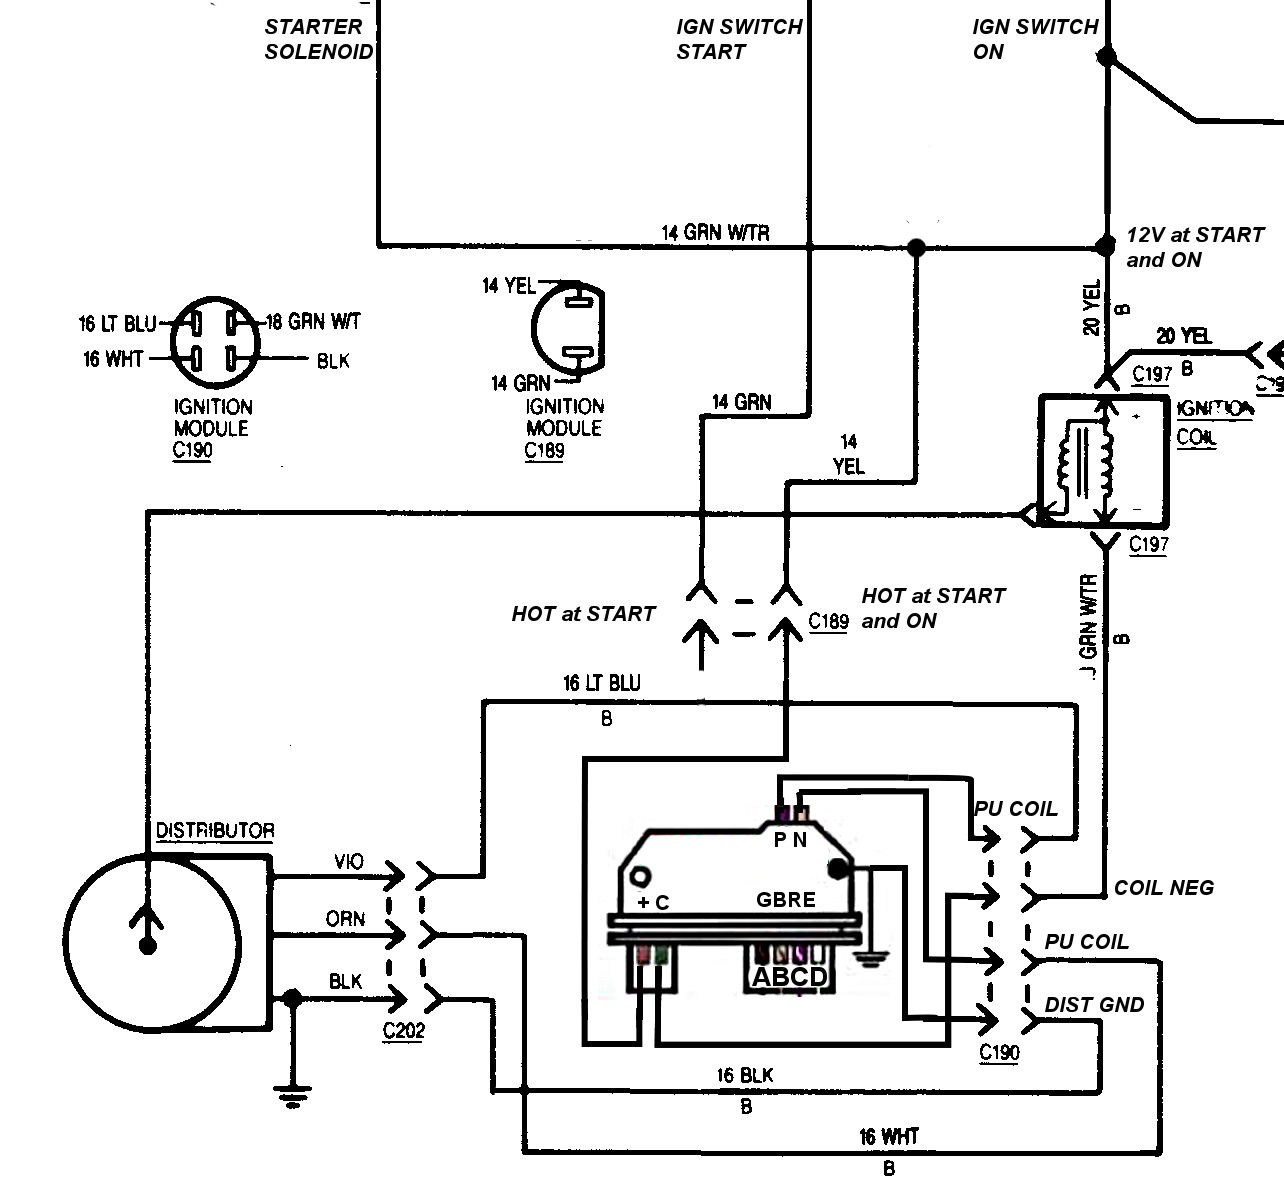 TBI+Wiring+1 gm wiring diagrams online chevy c10 starter wiring diagram \u2022 free free gm wiring diagrams at webbmarketing.co